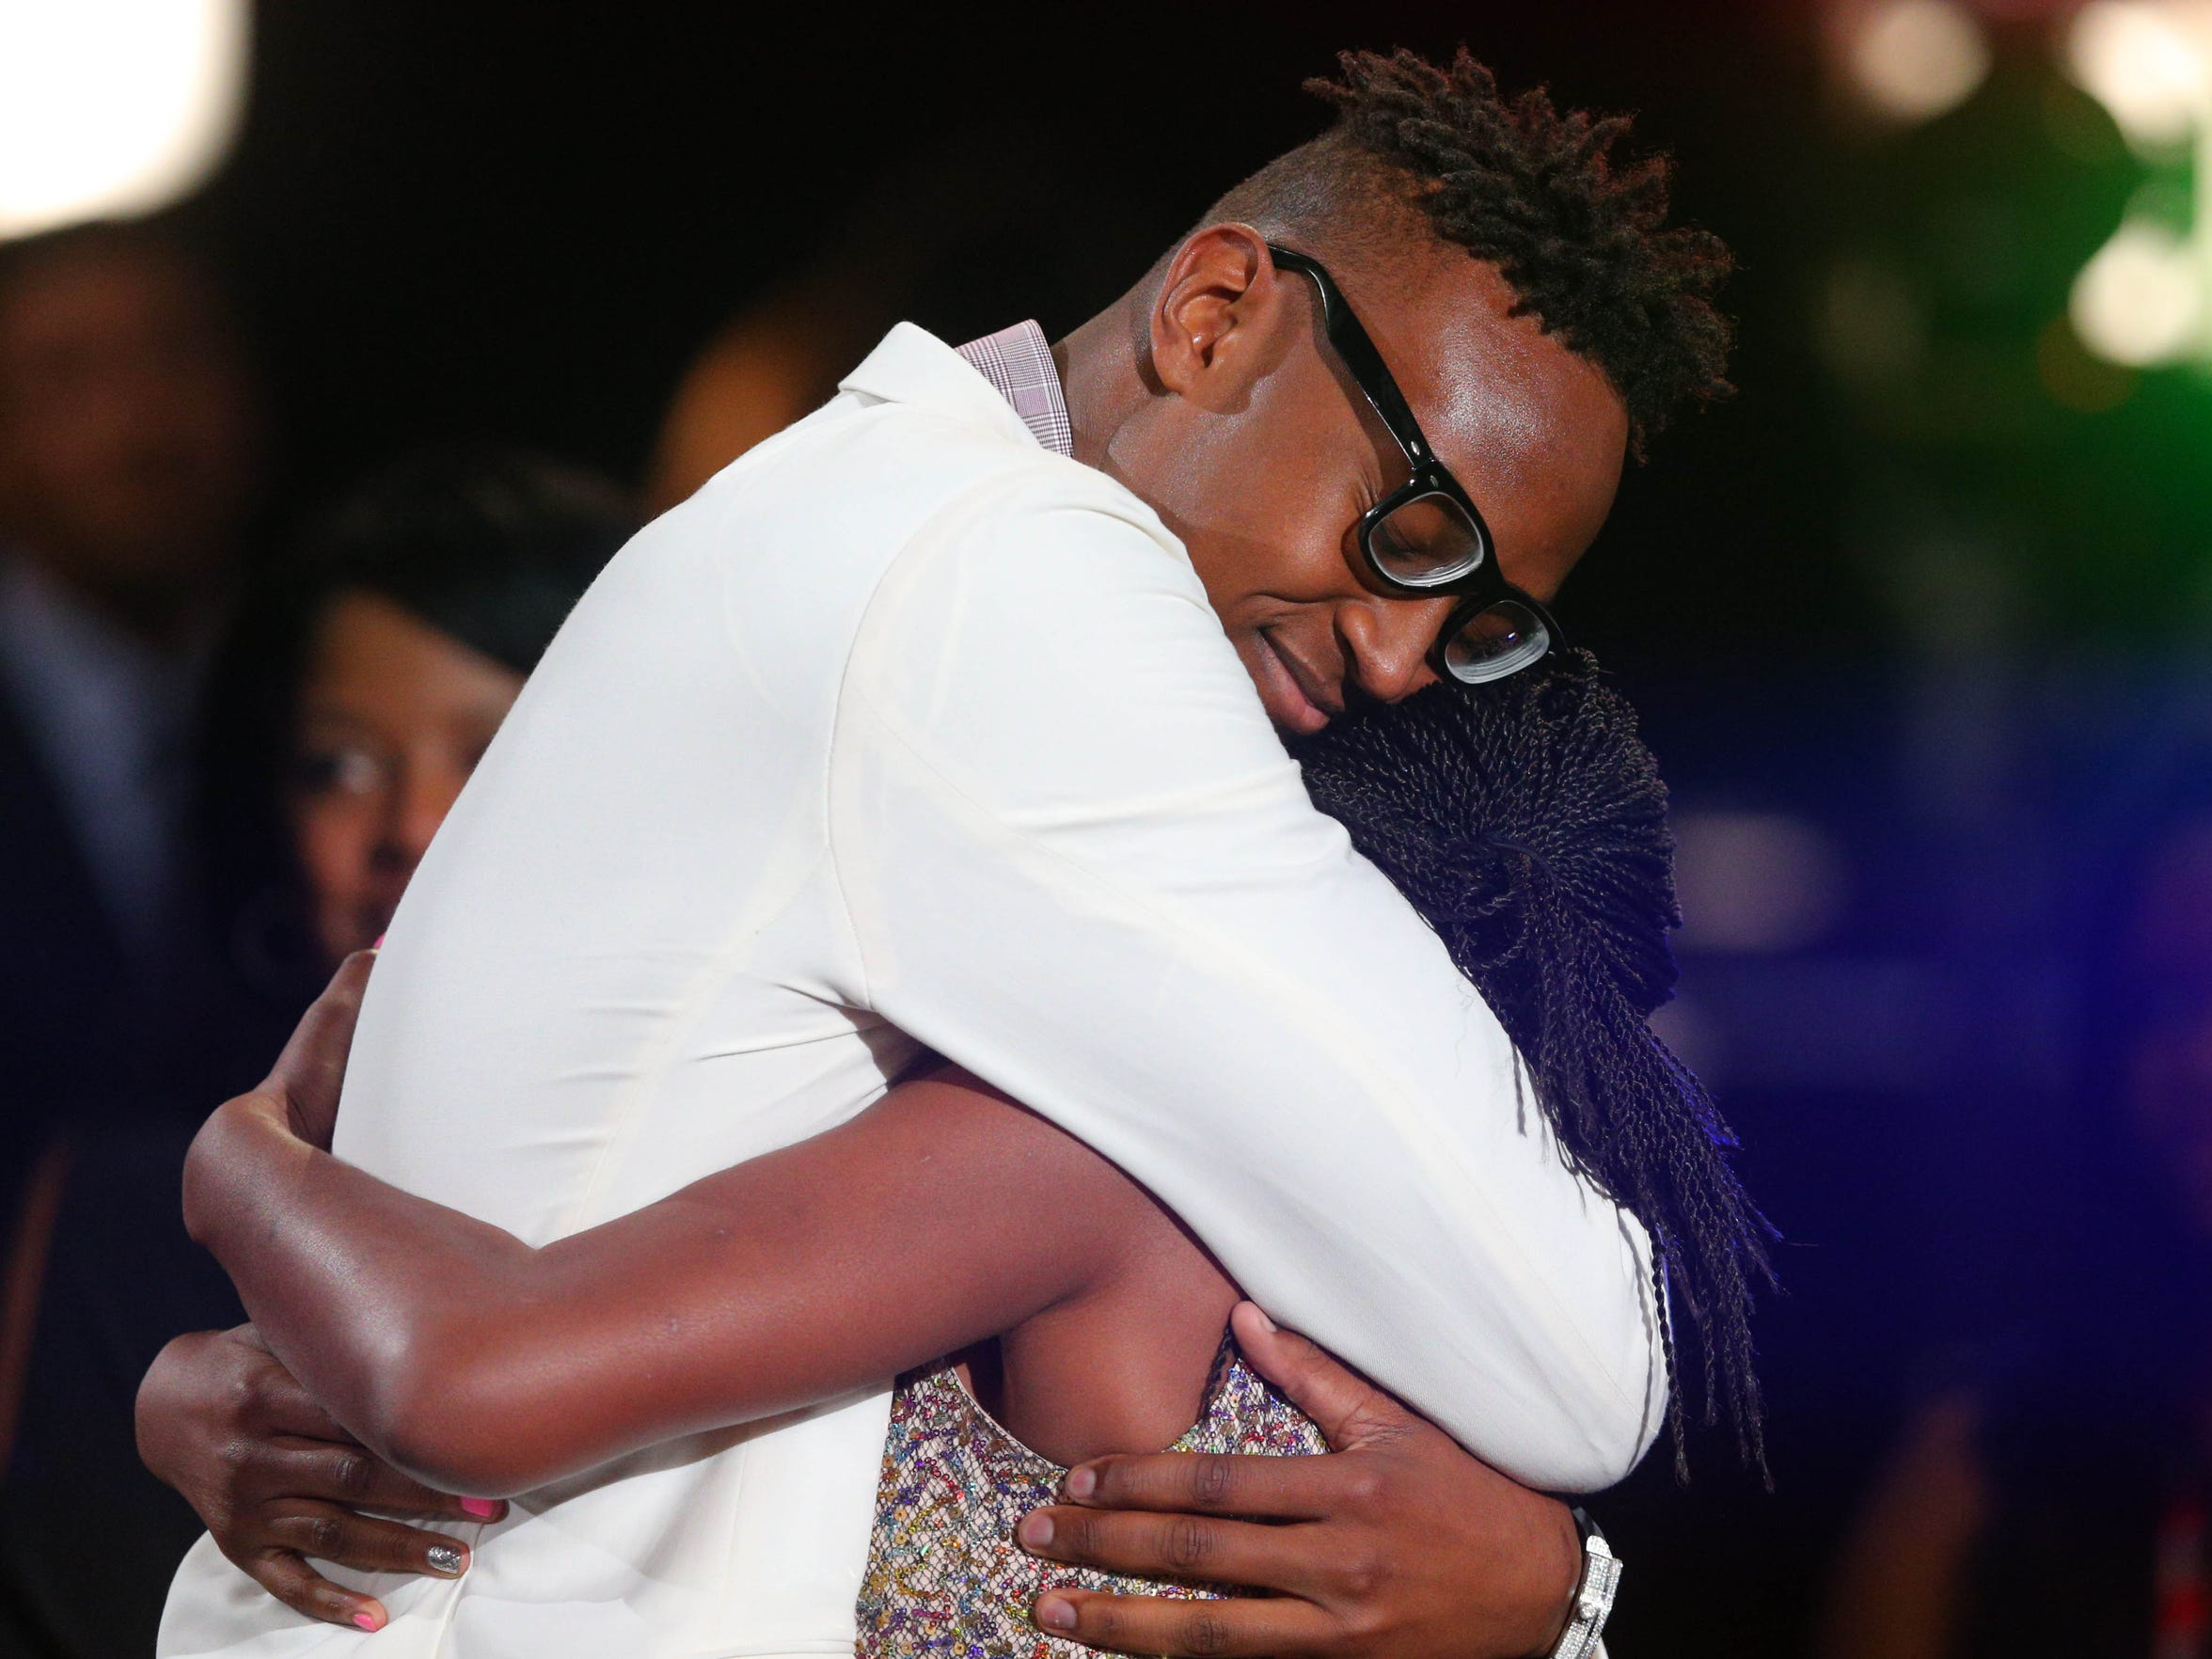 Myles Turner (Texas) receives a hug from family and friends after being selected as the number eleven overall pick to the Indiana Pacers in the first round of the 2015 NBA Draft at Barclays Center.